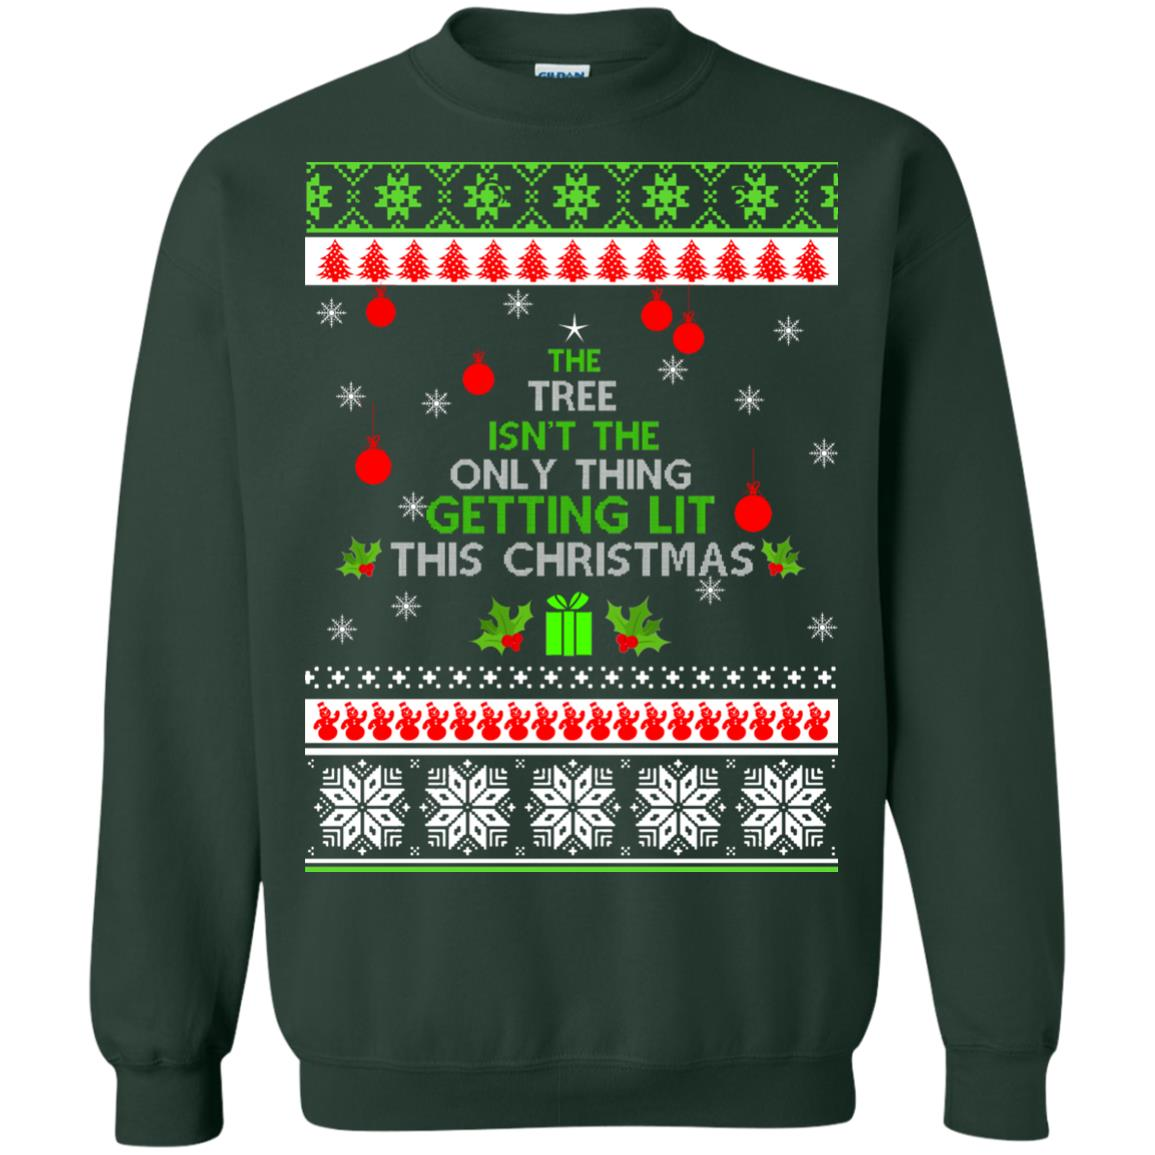 image 5572 - The Tree Isn't The Only Thing Getting Lit This Christmas Sweater, Long Sleeve